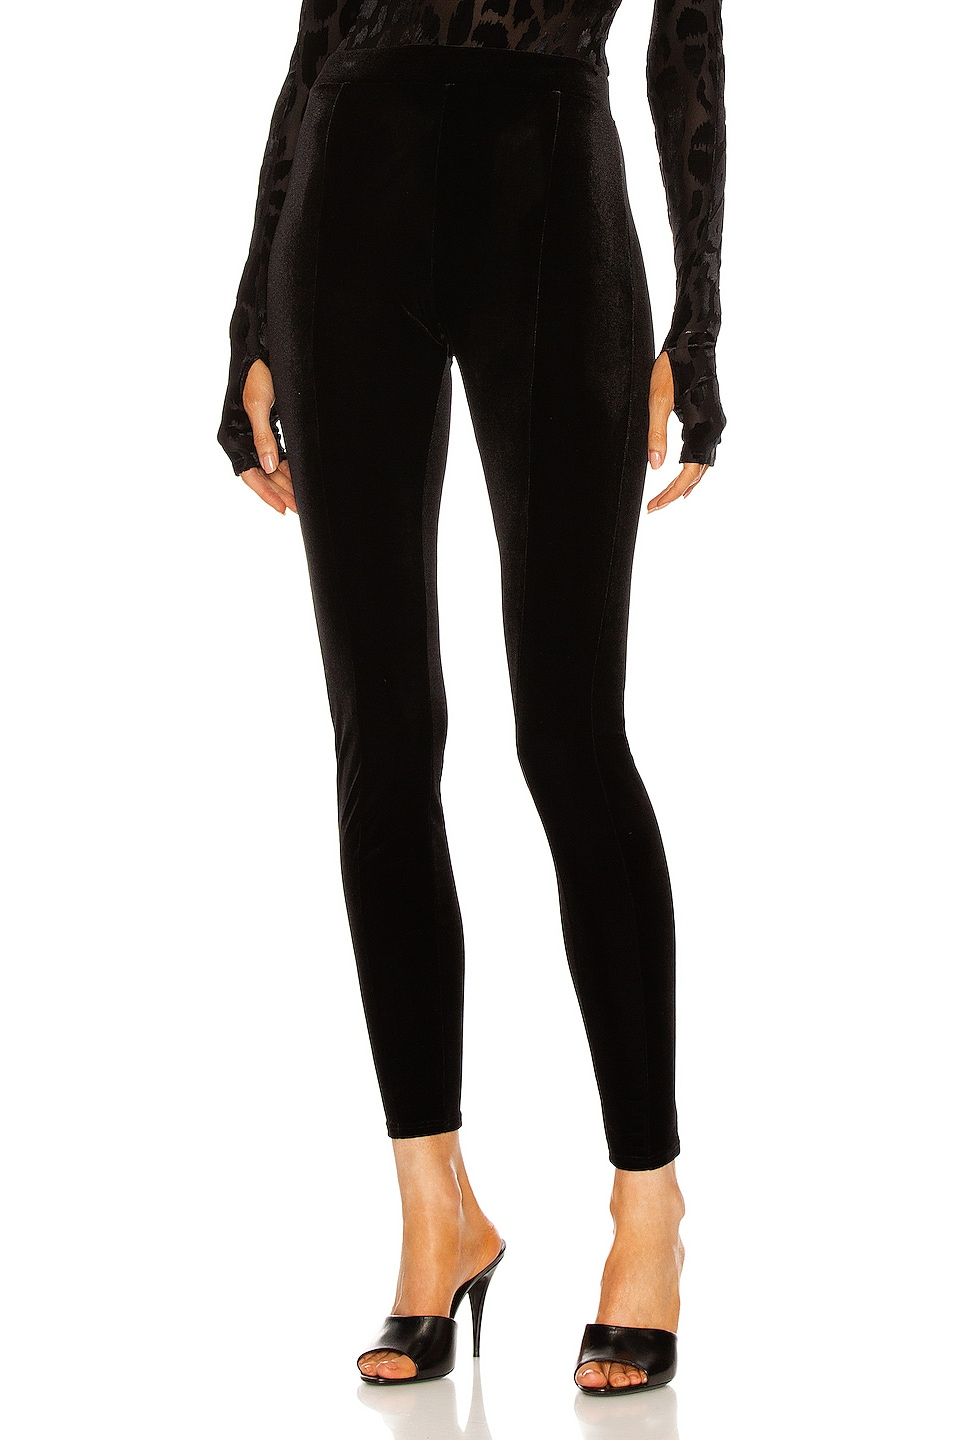 Image 1 of Alex Perry Bard Legging in Black